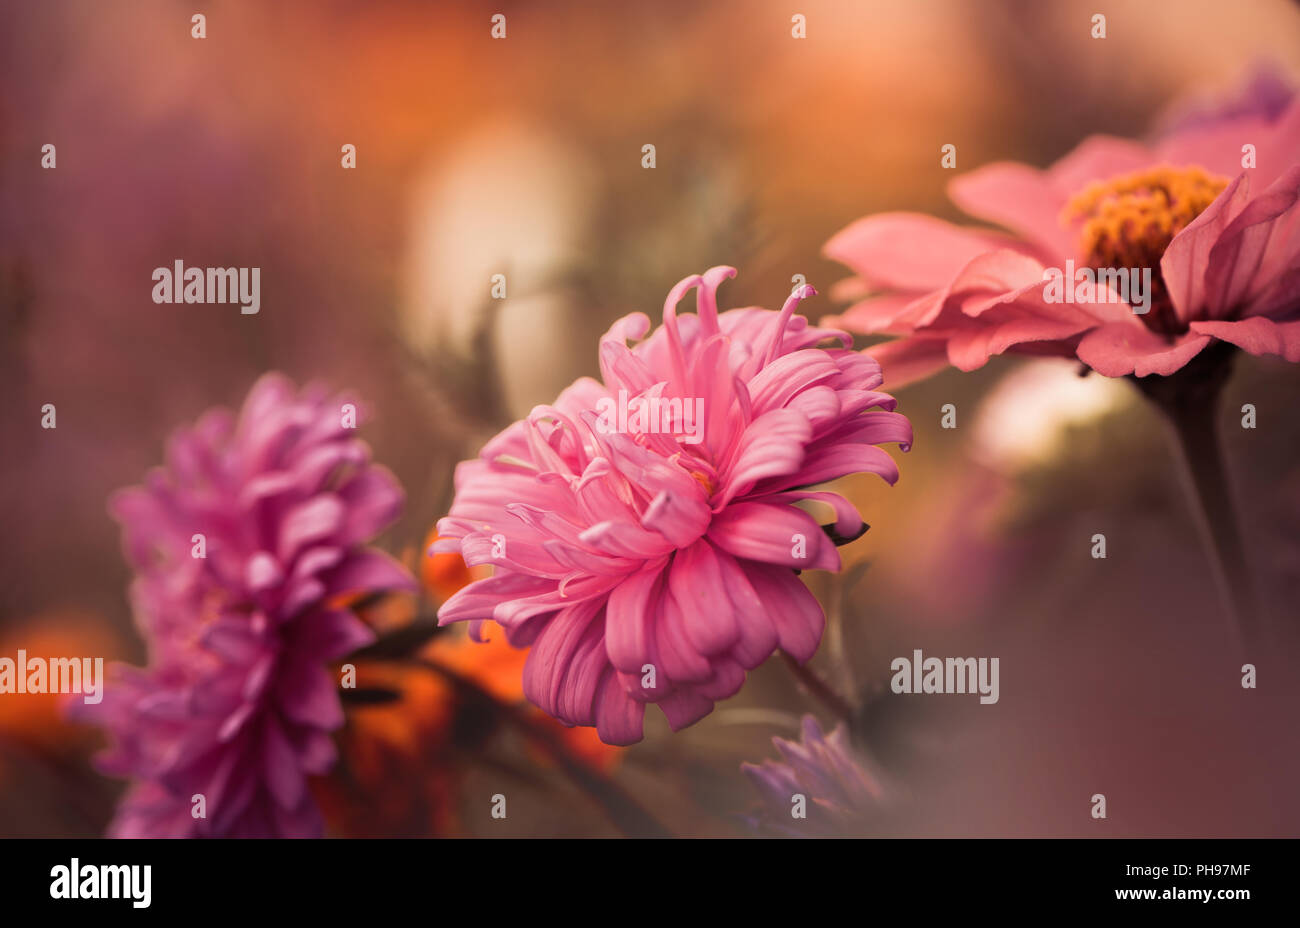 multicolor summer garden flowers isolated at abstract background - Stock Image